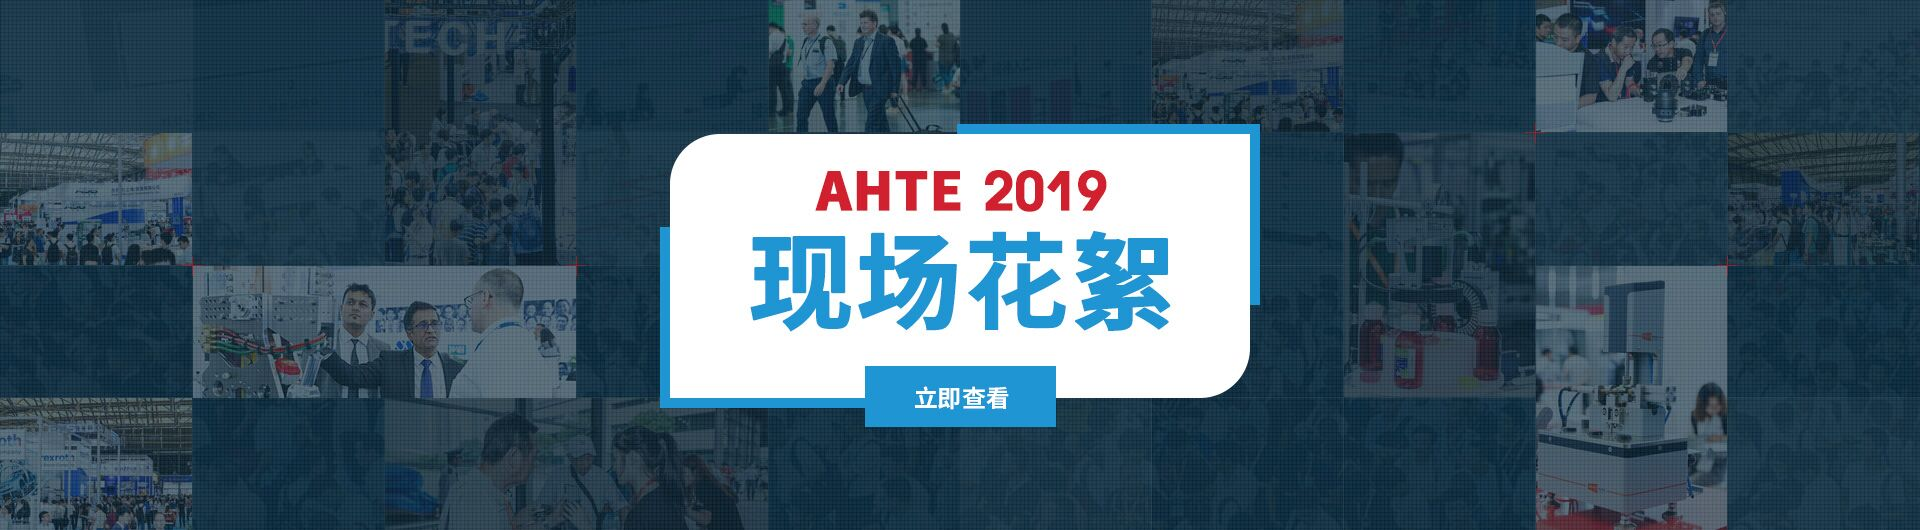 AHTE 2019 现场花絮